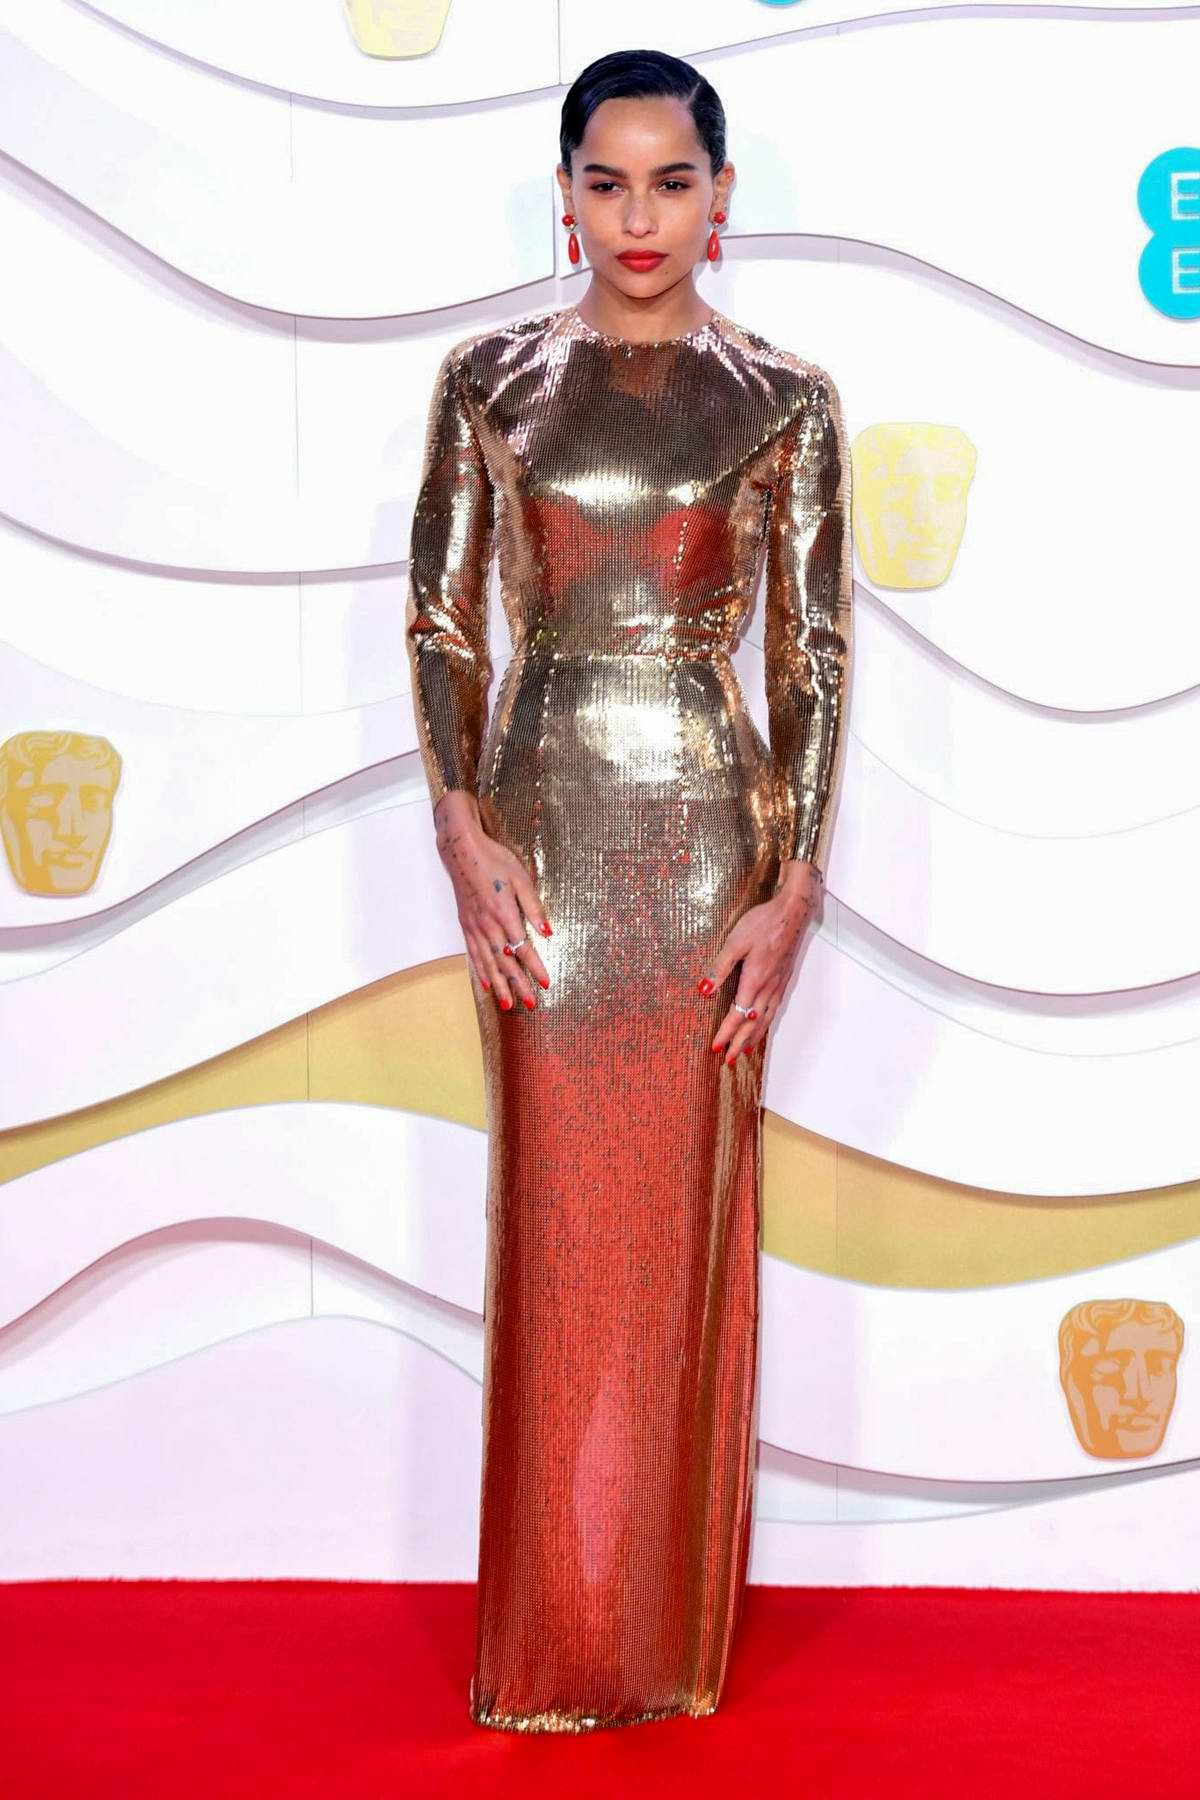 Zoe Kravitz attends the 73rd EE British Academy Film Awards at Royal Albert Hall in London, UK